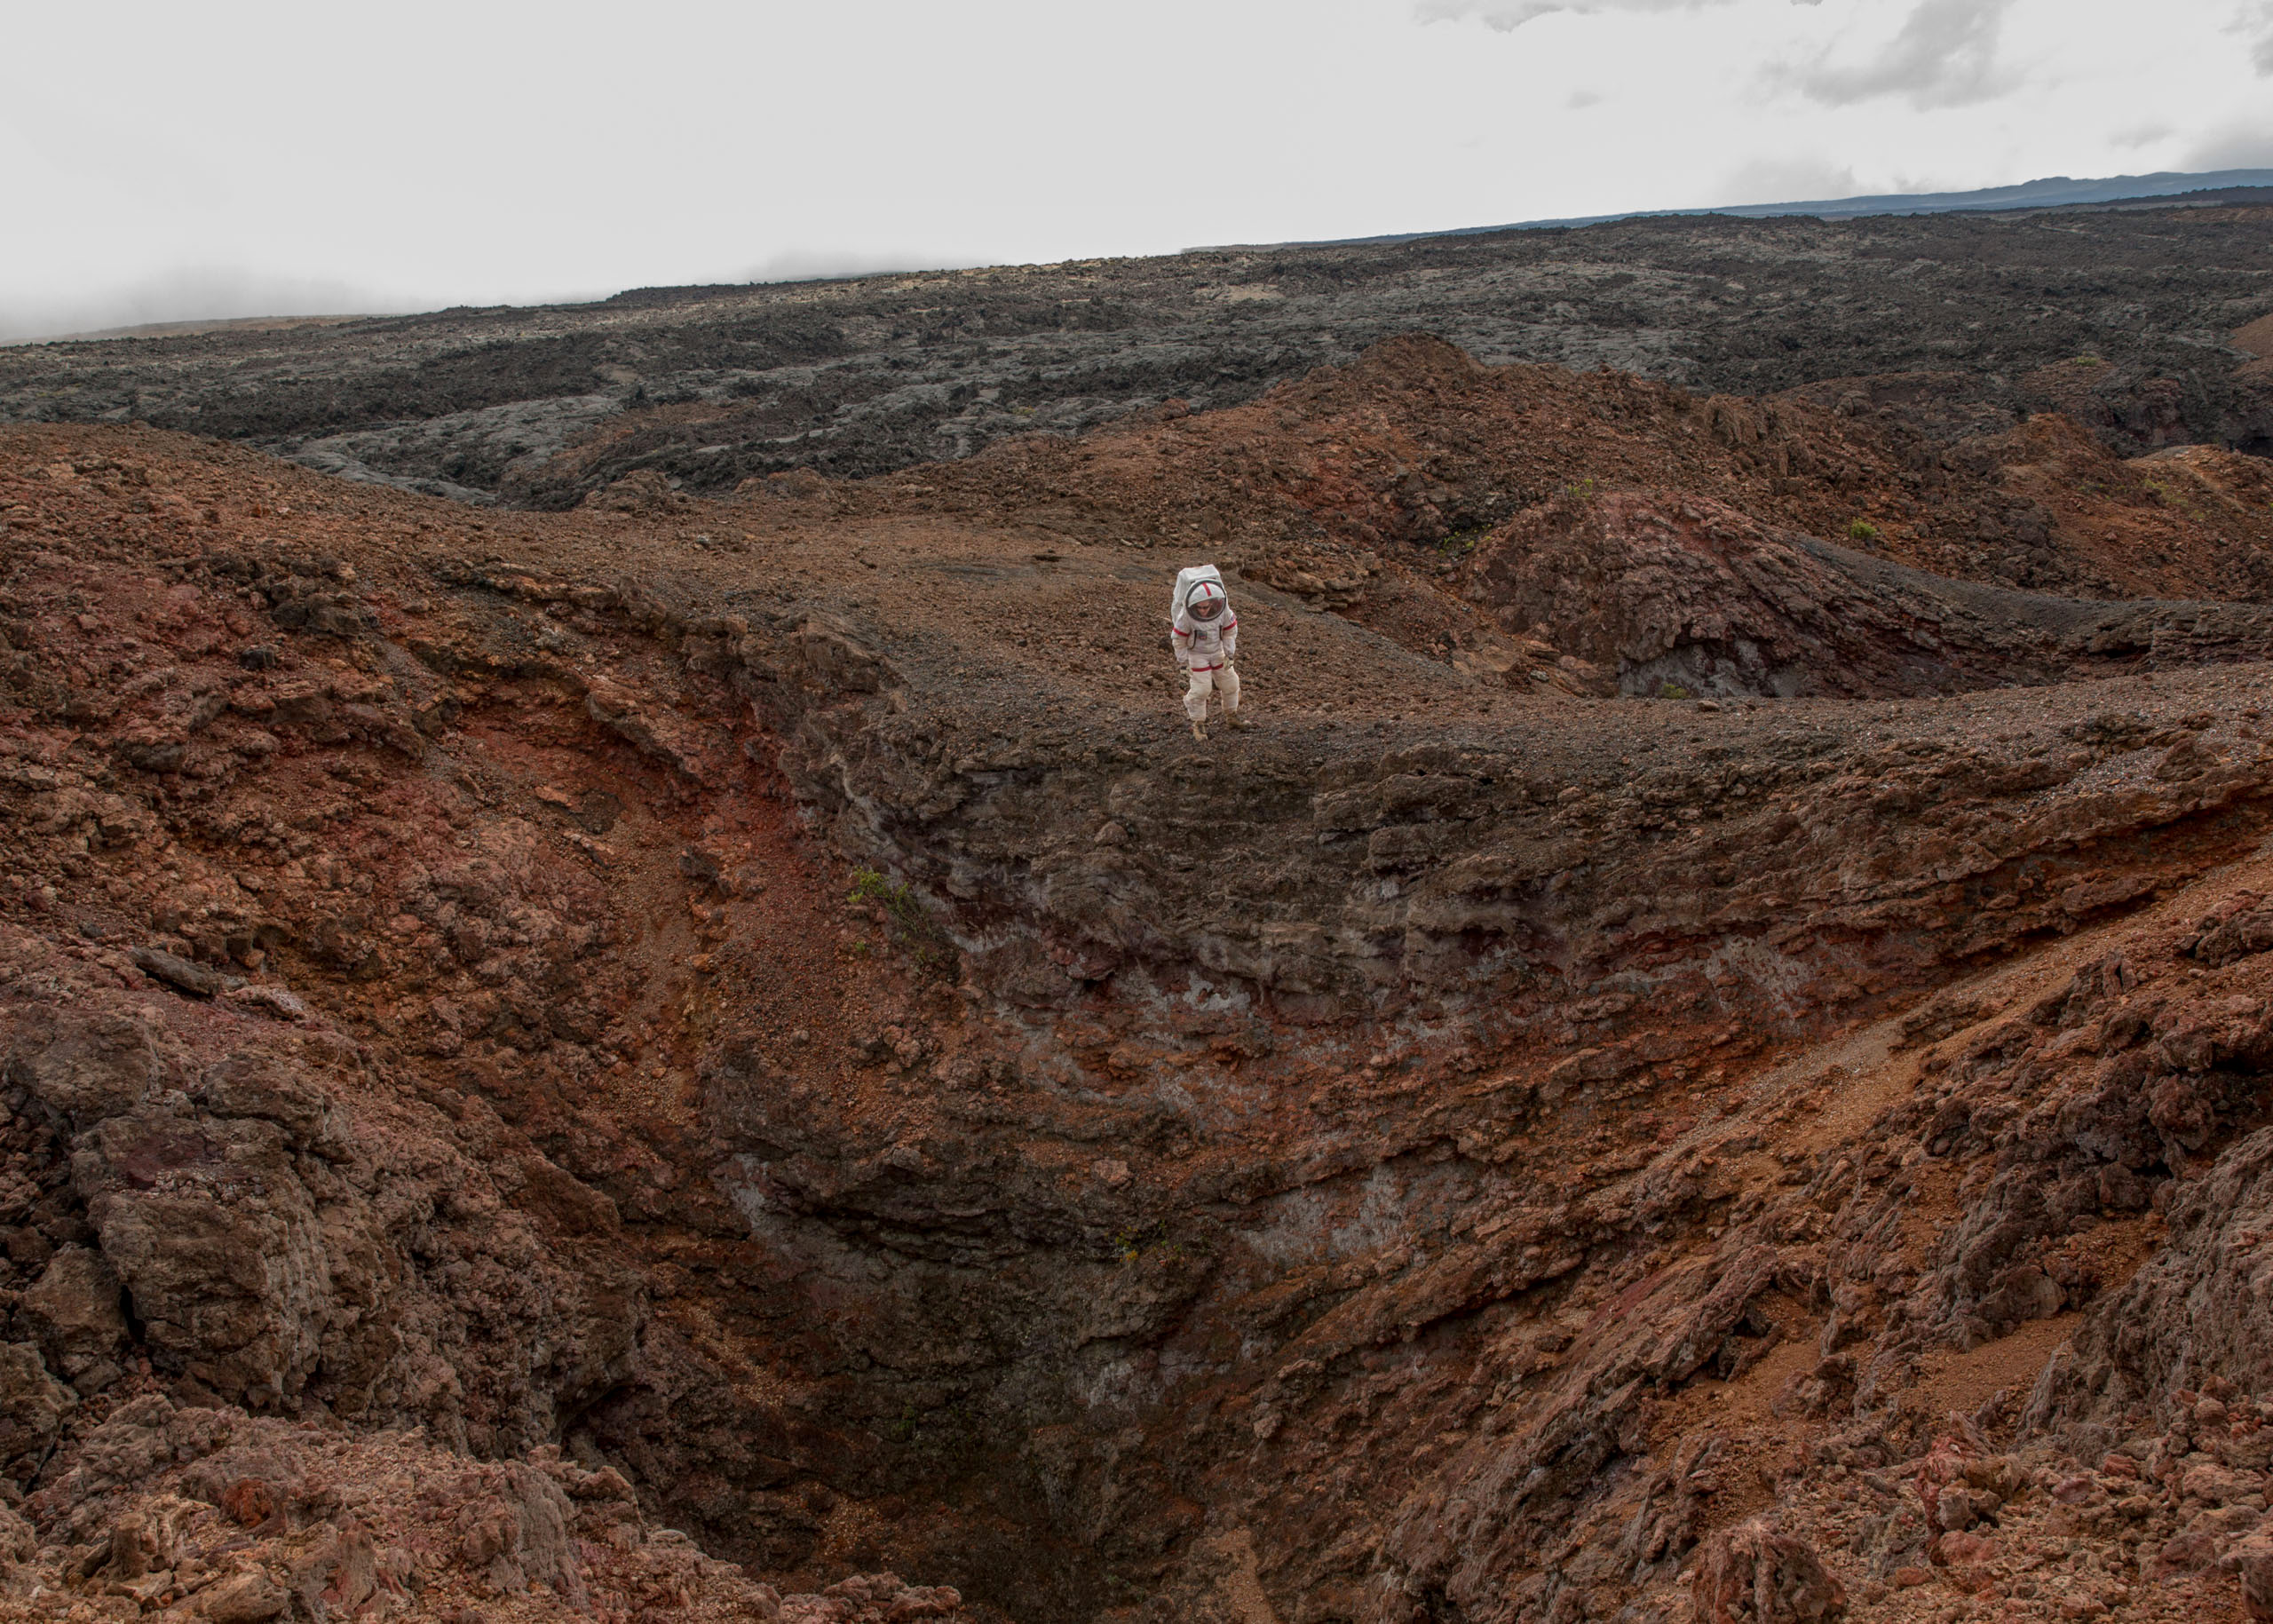 Carmel Johnston, Crew Commander for Mission 4, reenacts a spacewalk in a lava field near the HI-SEAS habitat on the island of Hawaii on Aug. 29, 2016. The crew emerged from 365 days in isolation on Aug. 28.